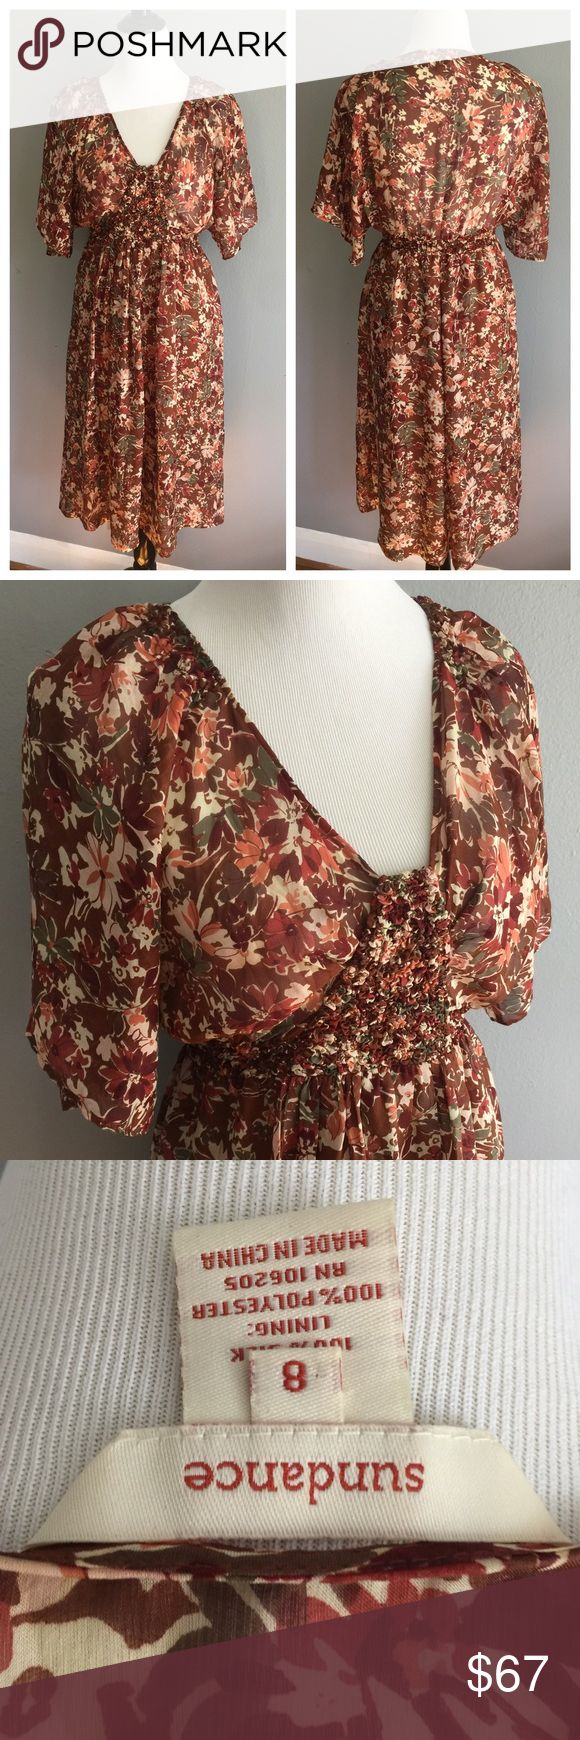 Sundance Catalog Silk Midi Dress Excellent condition, like new Silk Floral print is so on trend with browns and neutrals Skirt is fully lined, top is not but the pattern makes it not see through Bust and waist are Smocked with lots of elastic to stretch for the perfect fit Sundance Dresses Midi